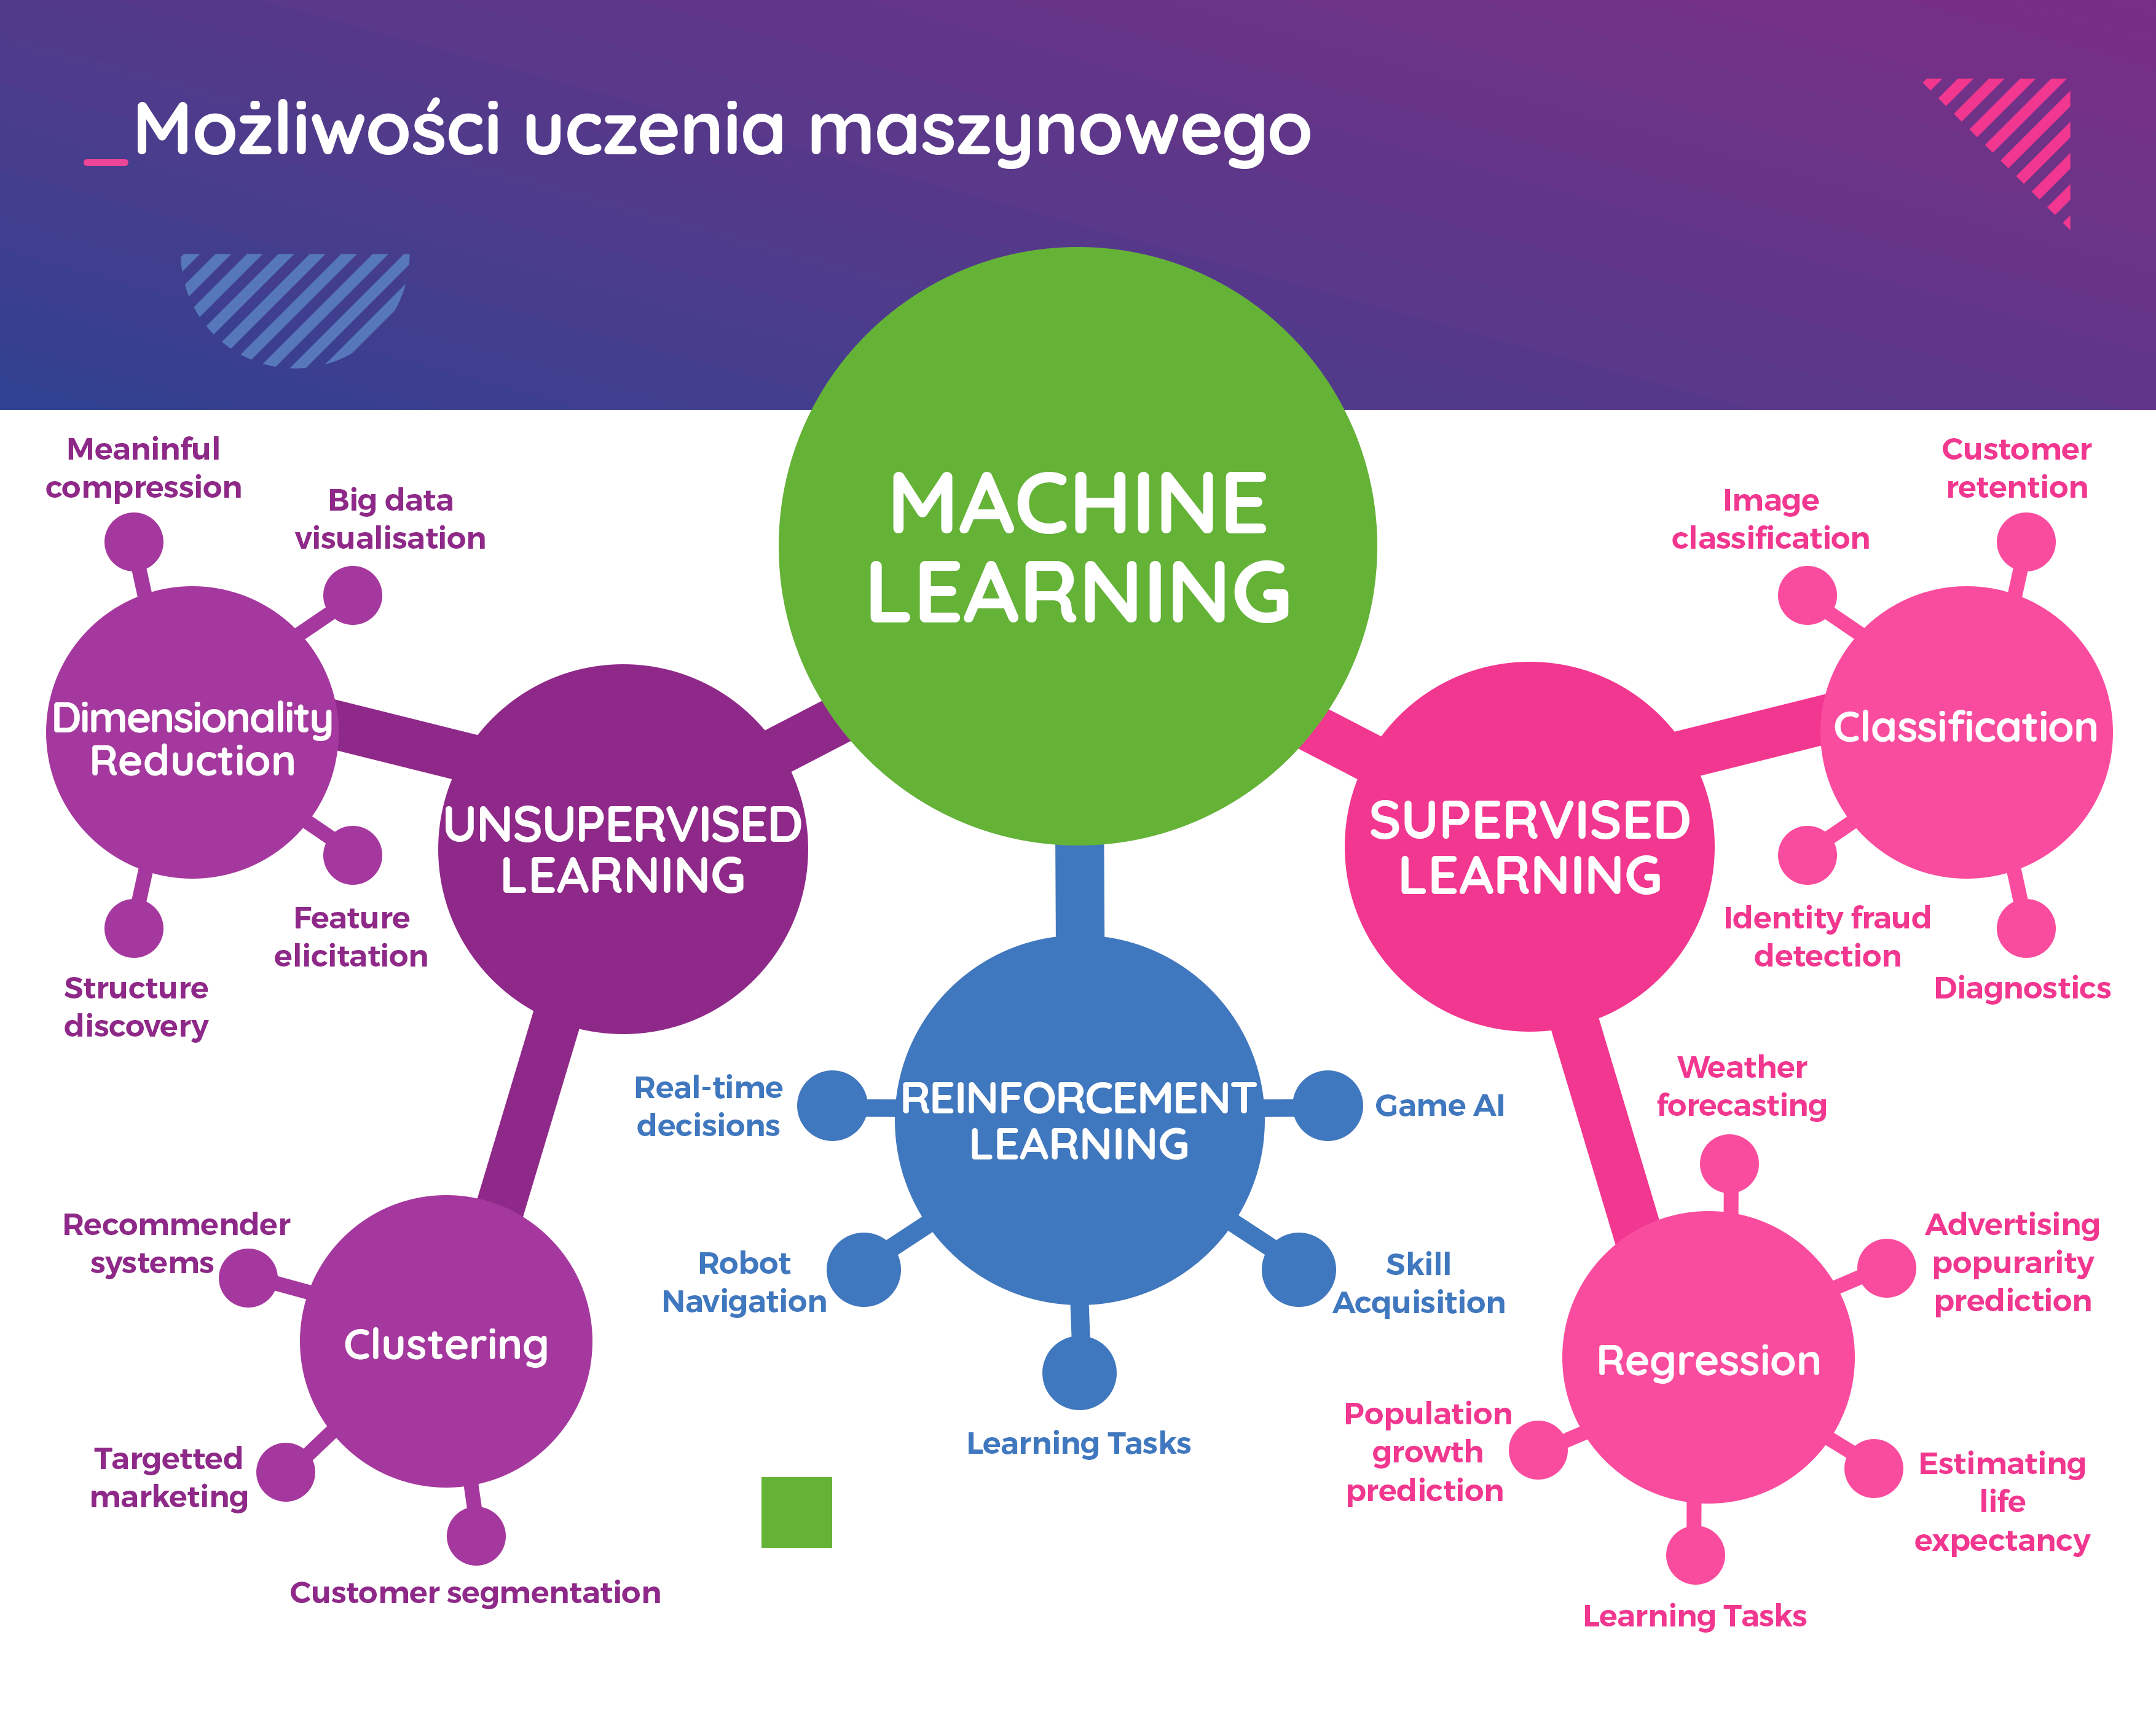 Machine learning capabilities